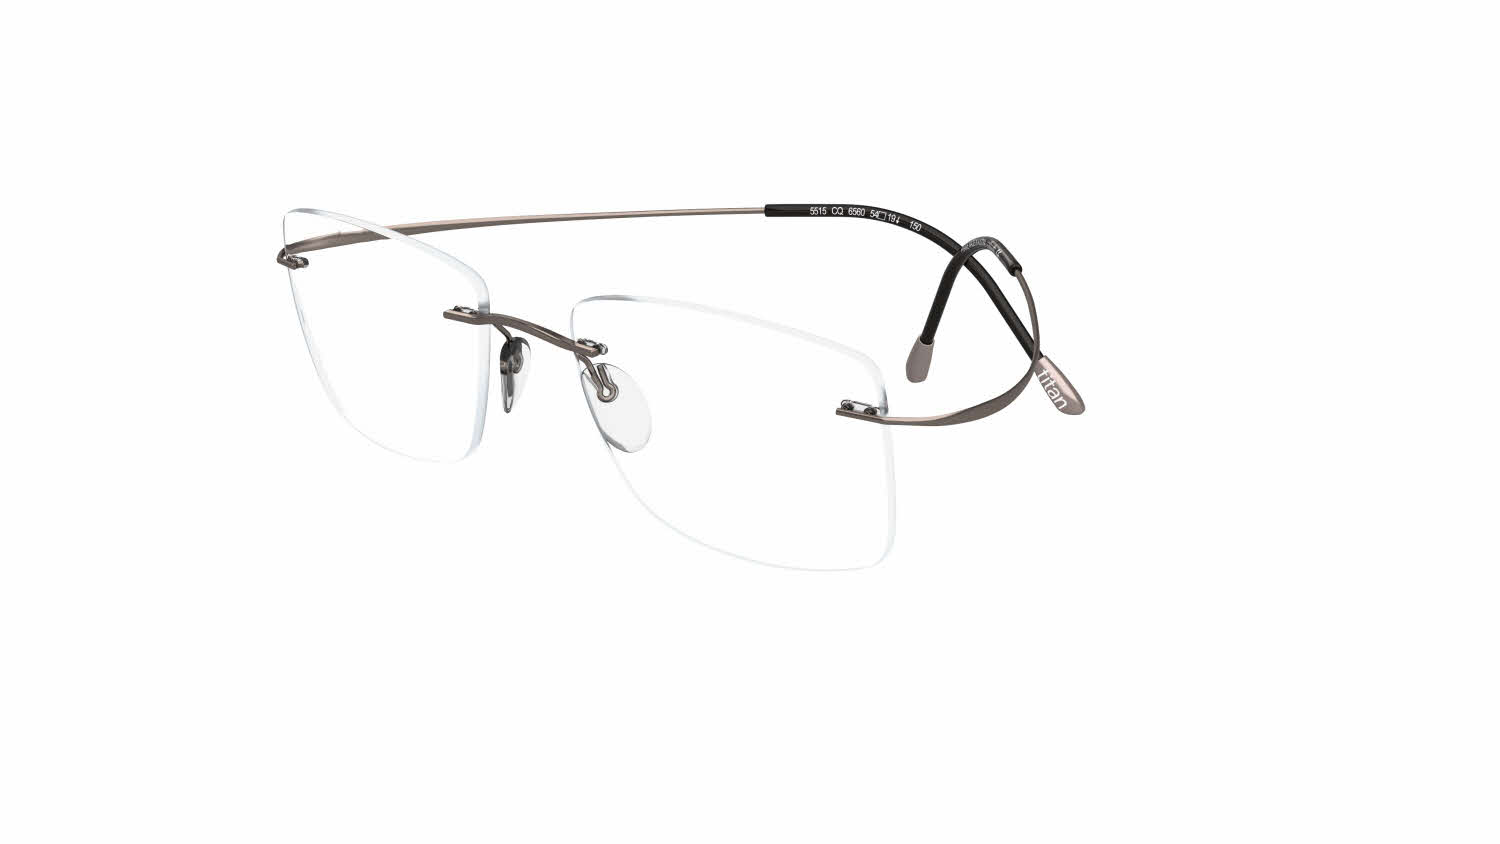 Silhouette Rimless 5515 7799 An Minimal Art The Must Collection Eyegles